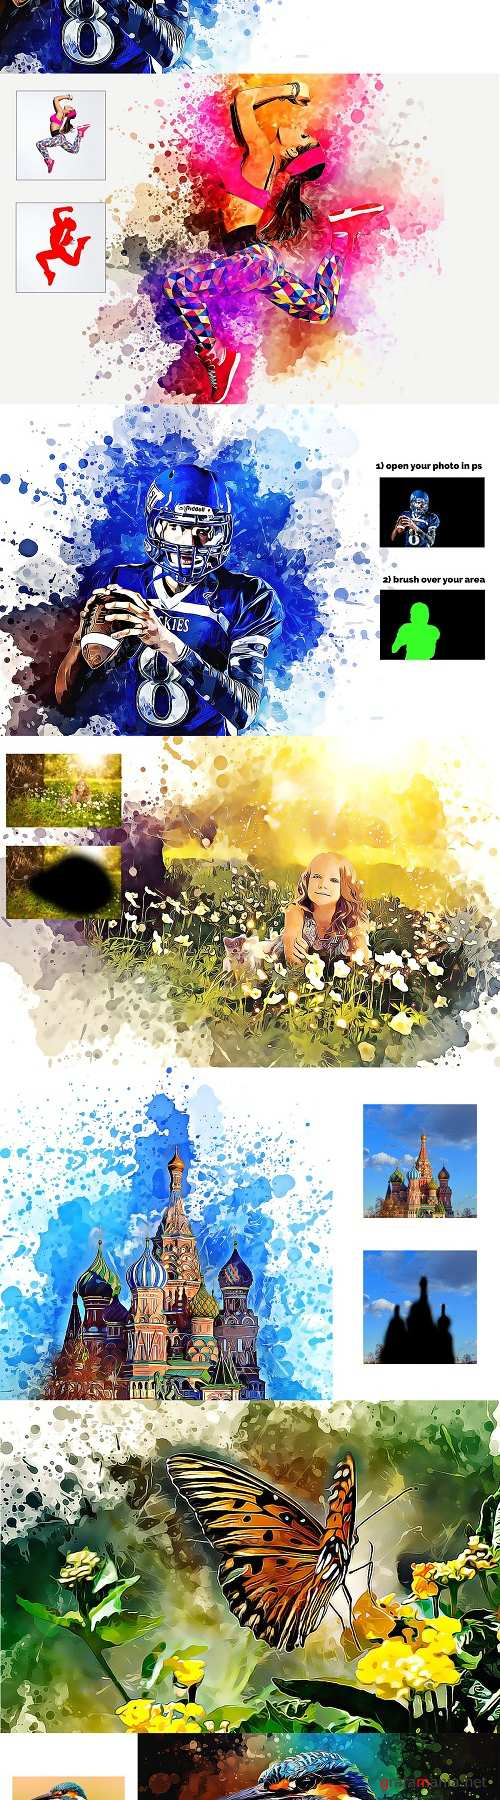 Watercolor Painting Photoshop Action 3365167